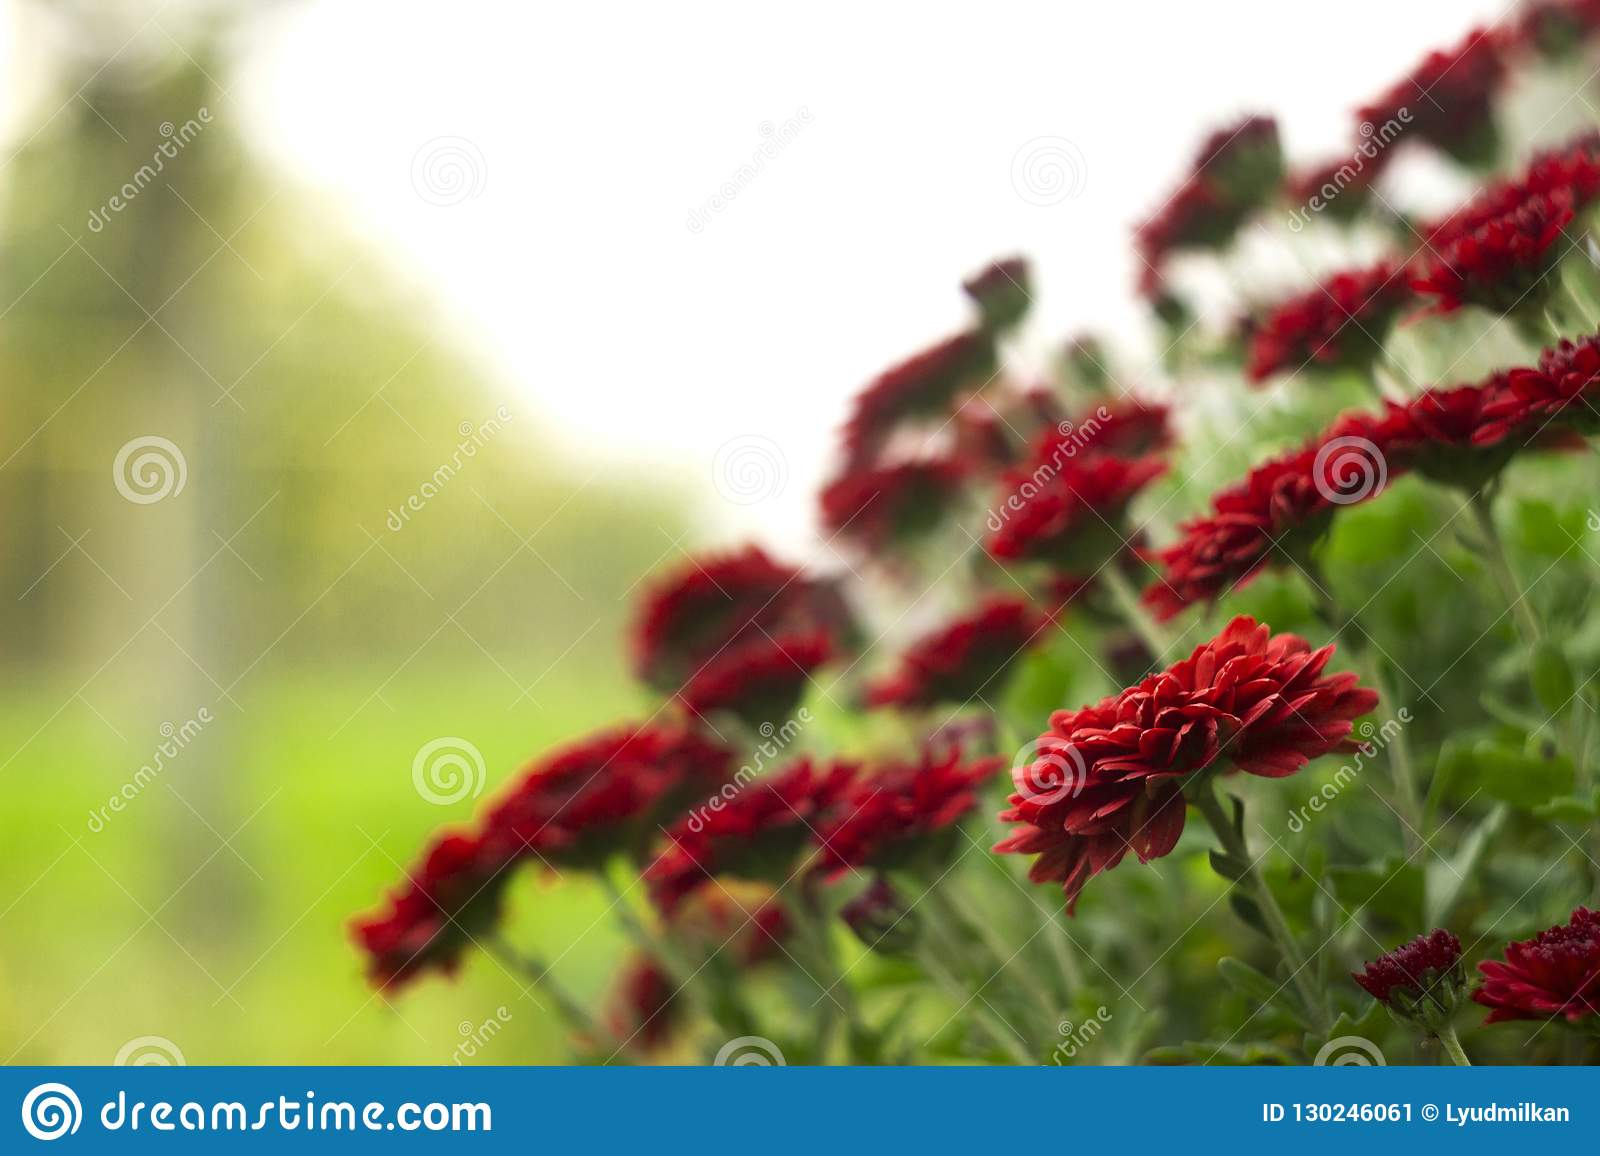 Red chrysanthemums in the garden, bright autumn flowers like chamomile